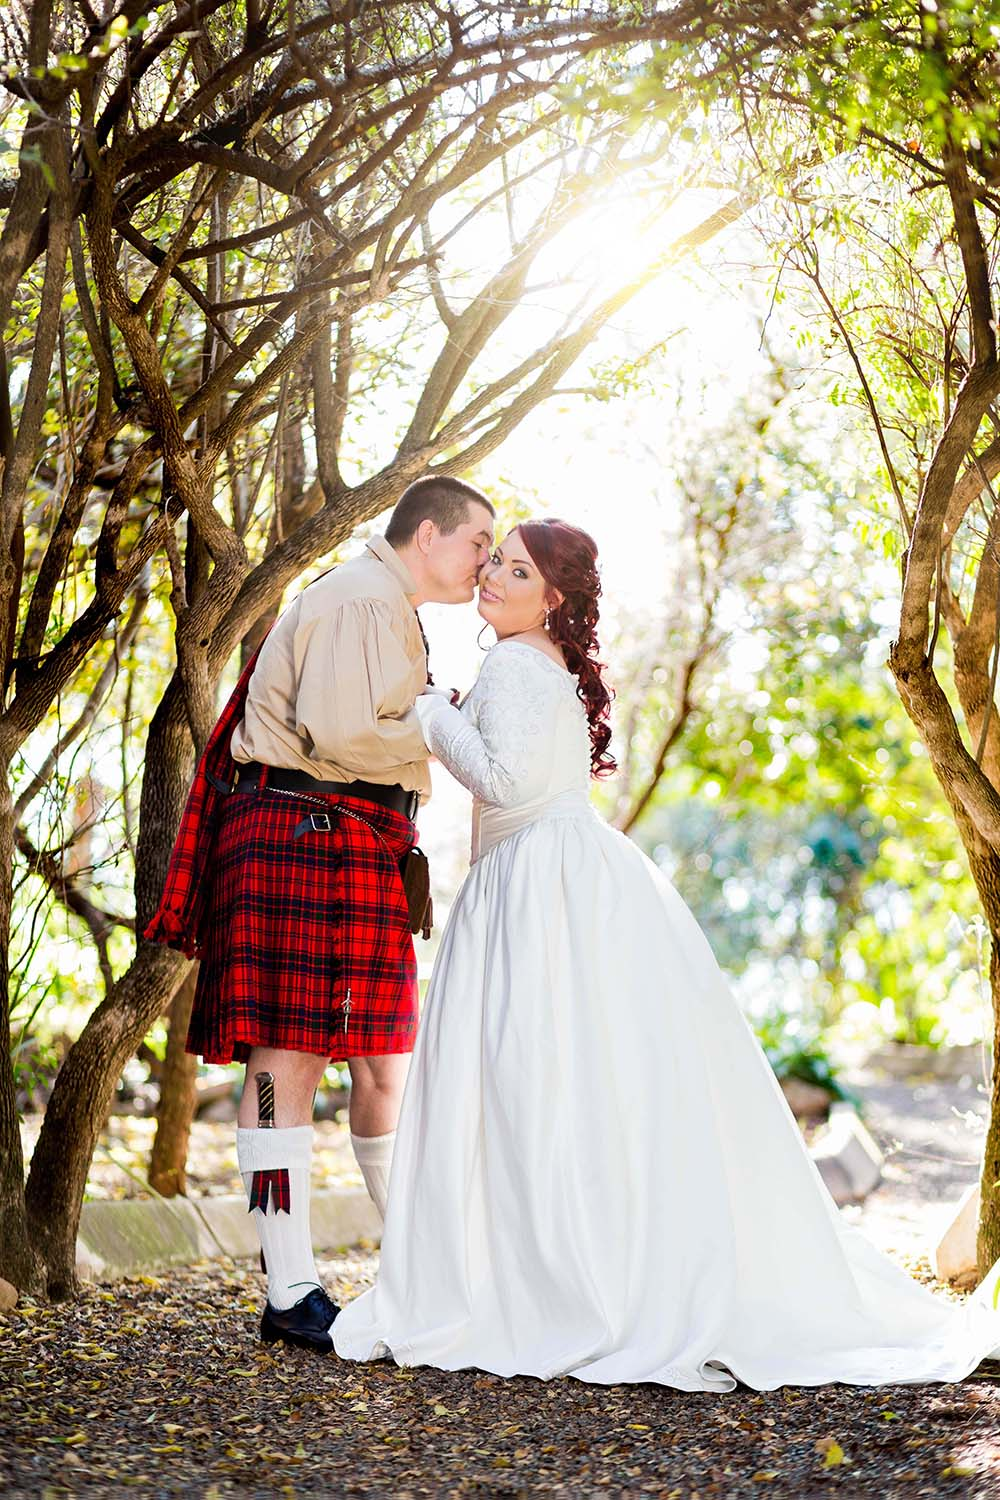 A stunning Medieval Themed Wedding in South Africa - UK Wedding Blog ...